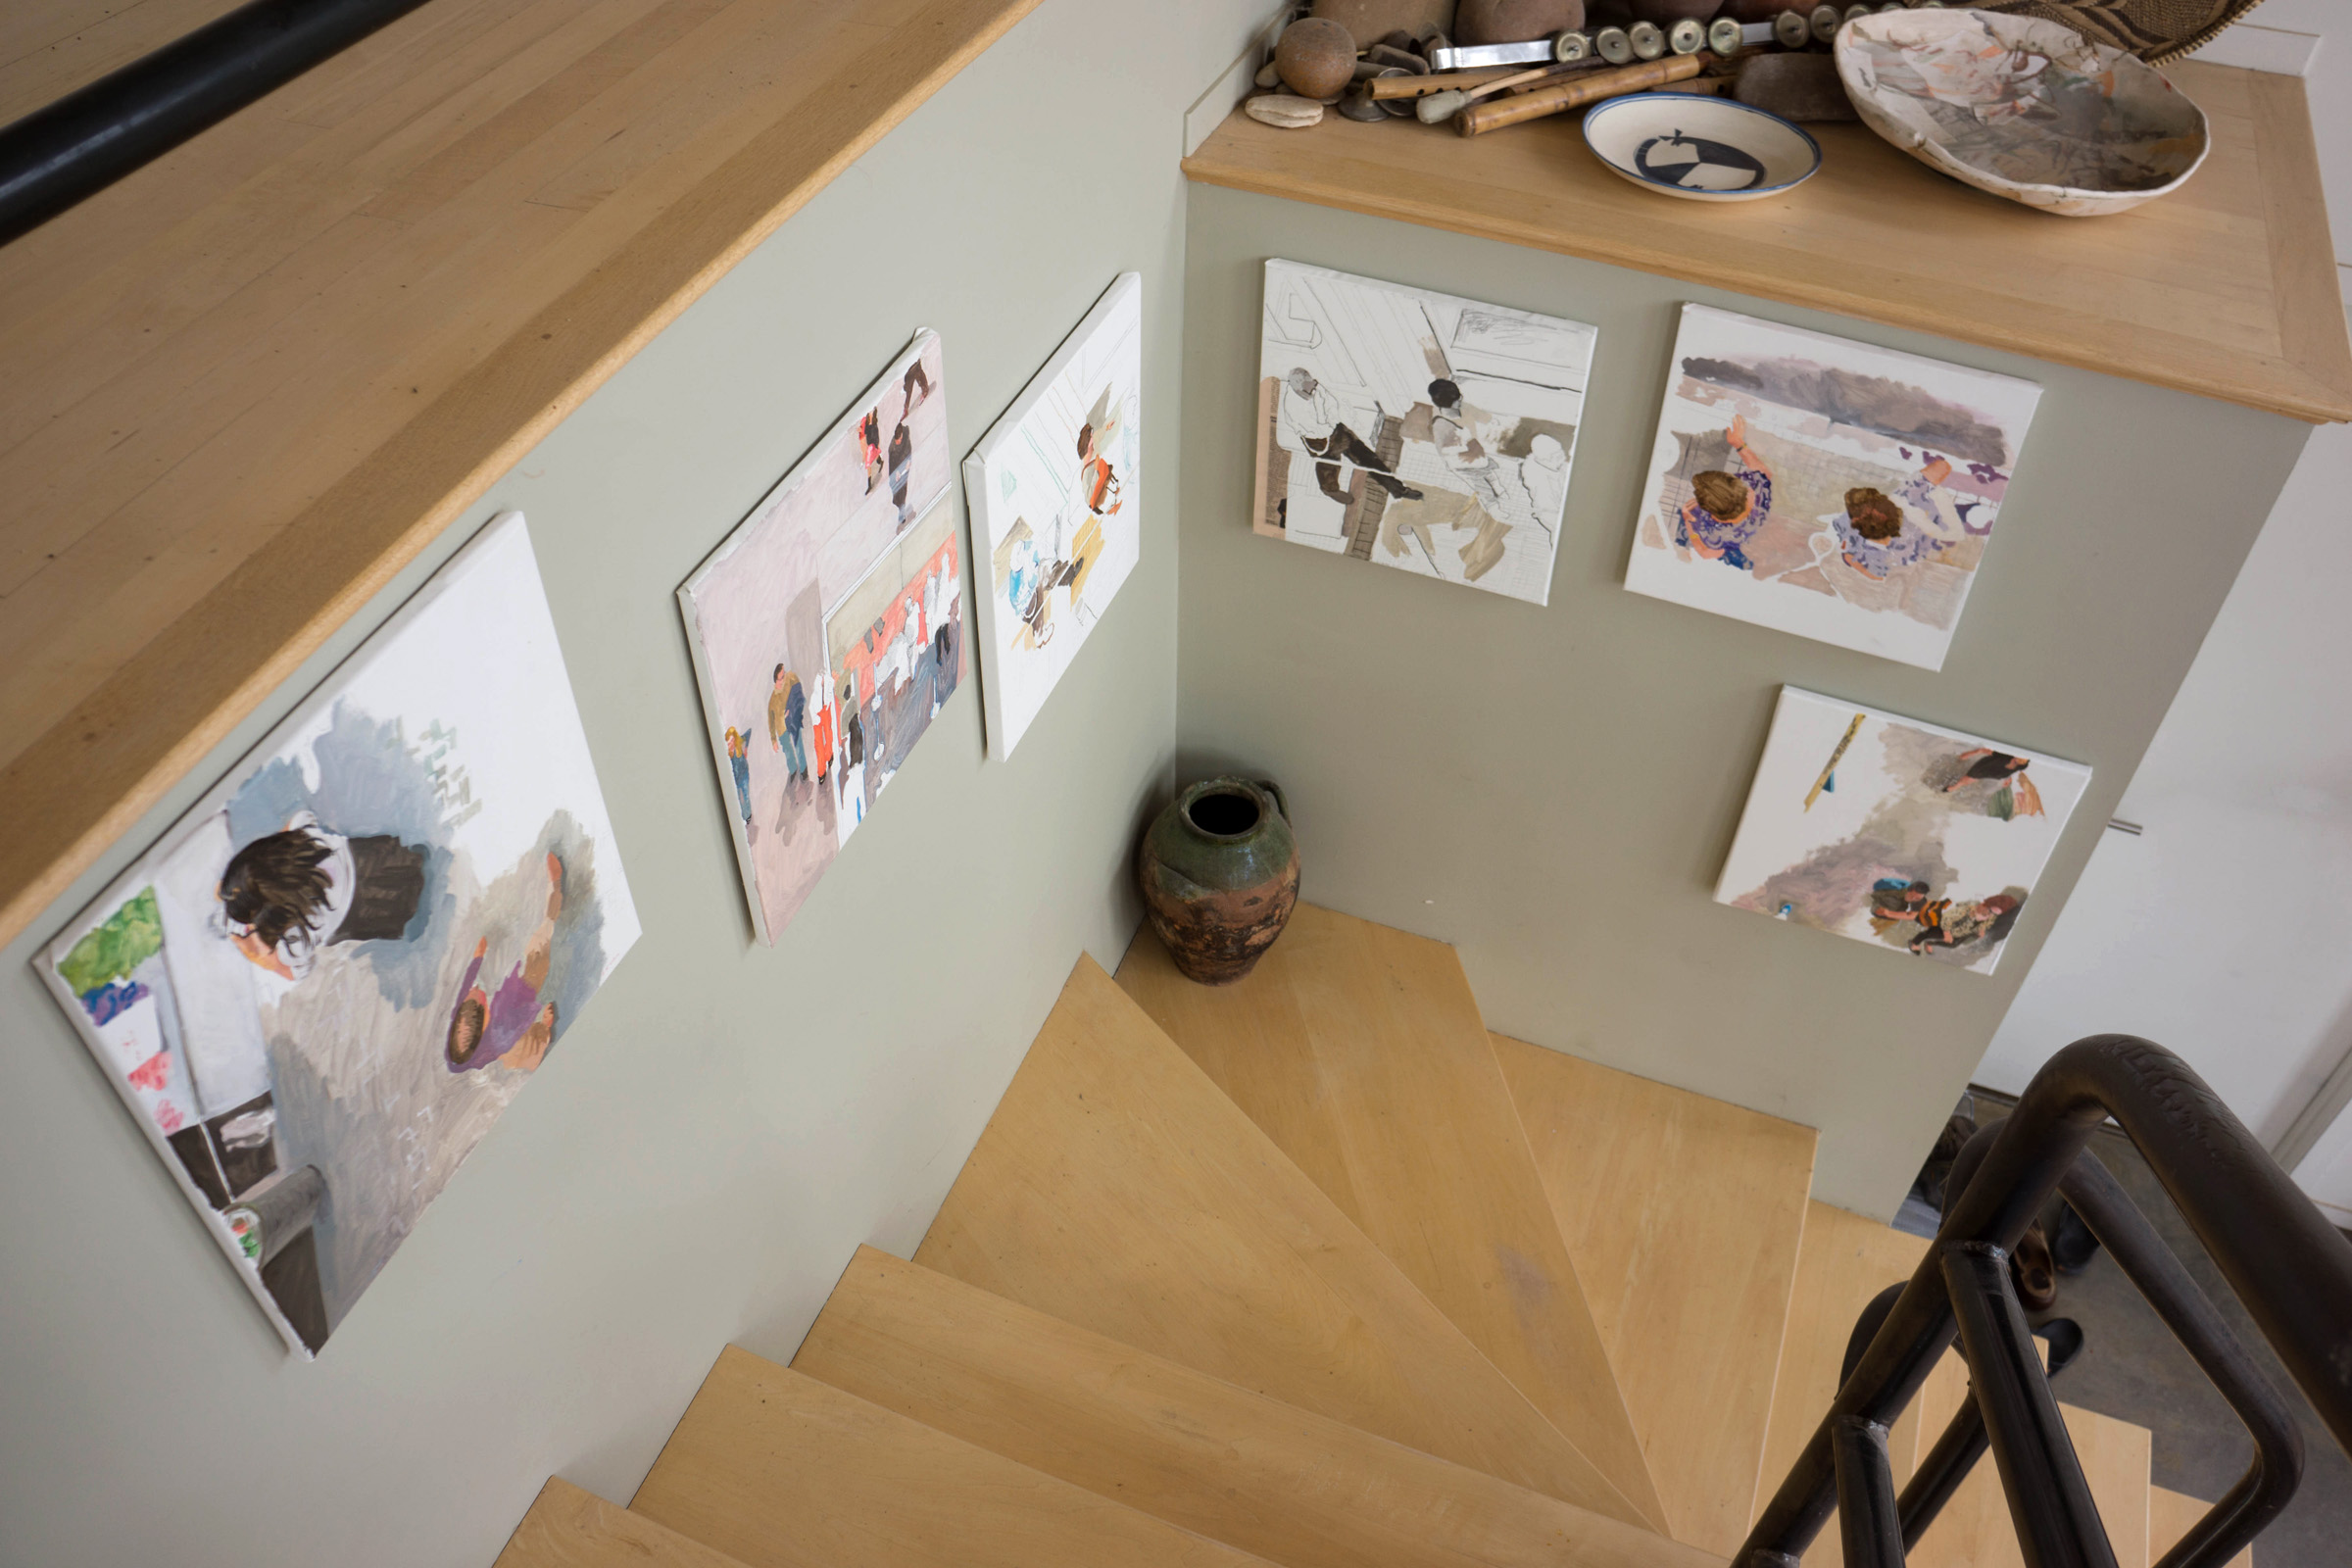 site-10-27-14 best left unsaid series on stairs.jpg